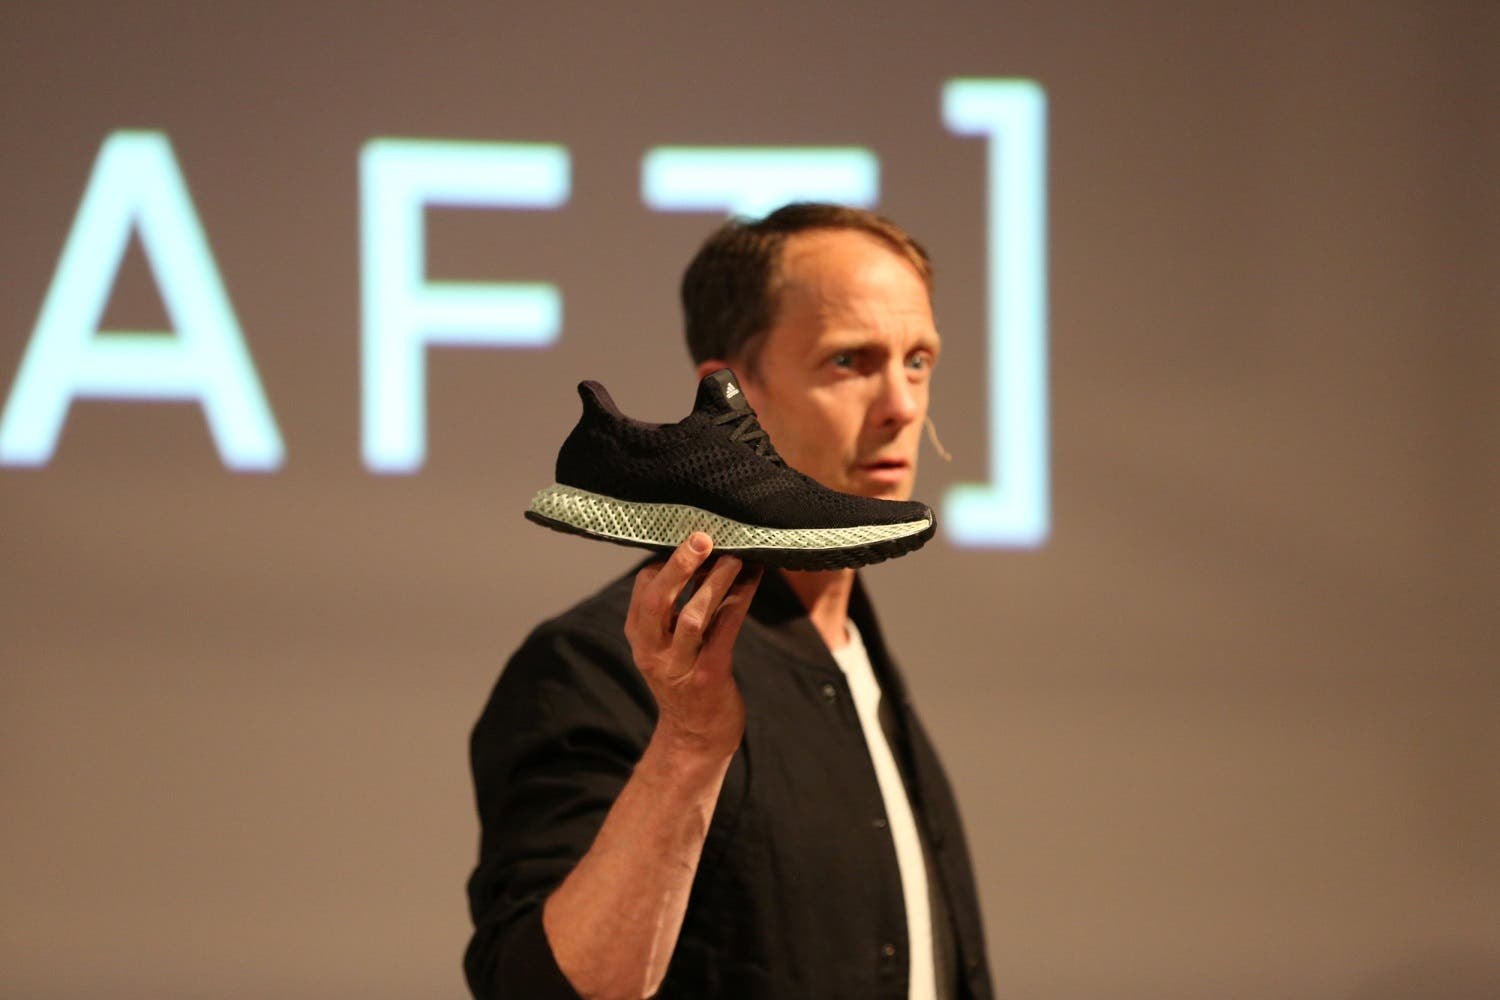 Adidas Executive Board Global Brands member Eric Liedtke holds the new Futurecraft shoe at an unveiling event in New York City, on April 6, 2017. (Reuters)